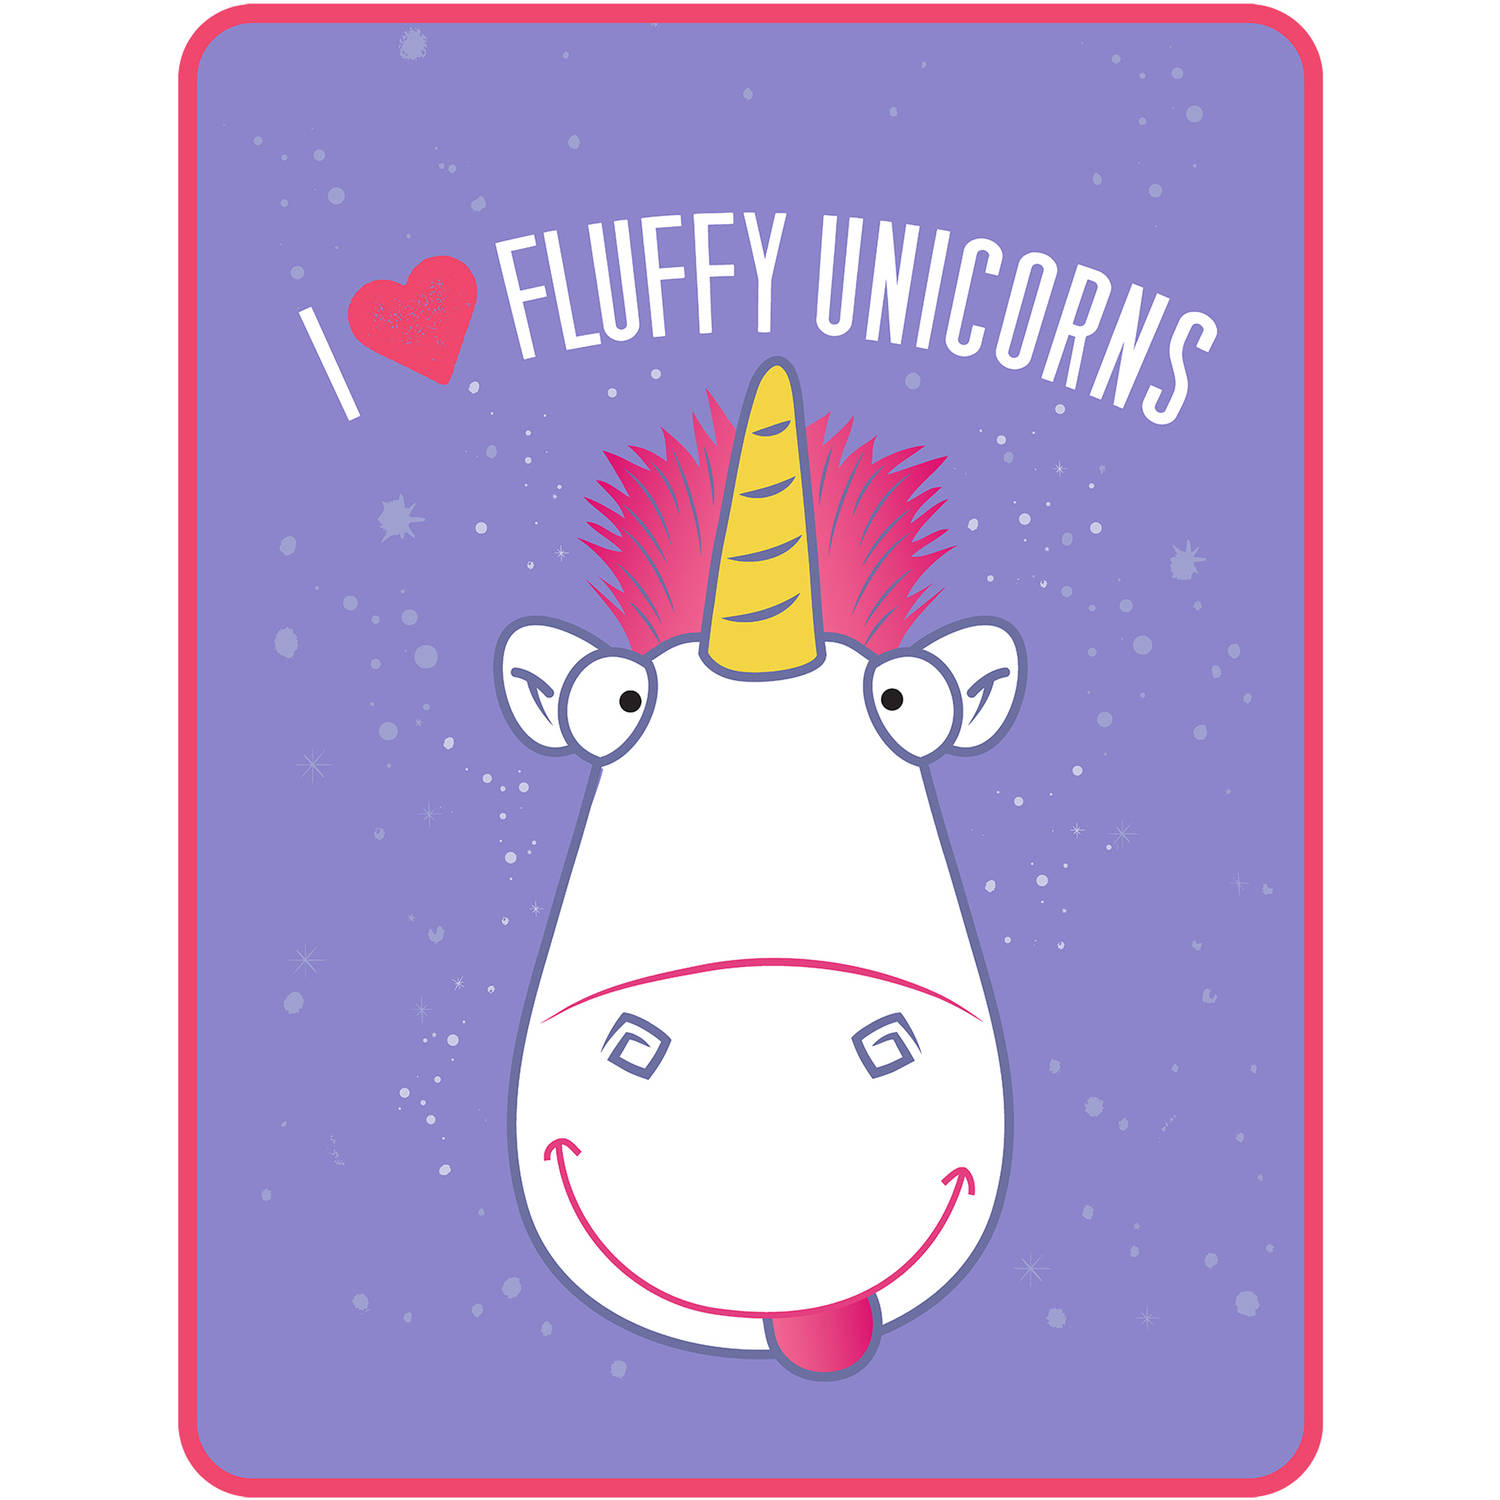 Despicable Me Minions Fluffy the Unicorn I Heart Fluffy Kids Throw